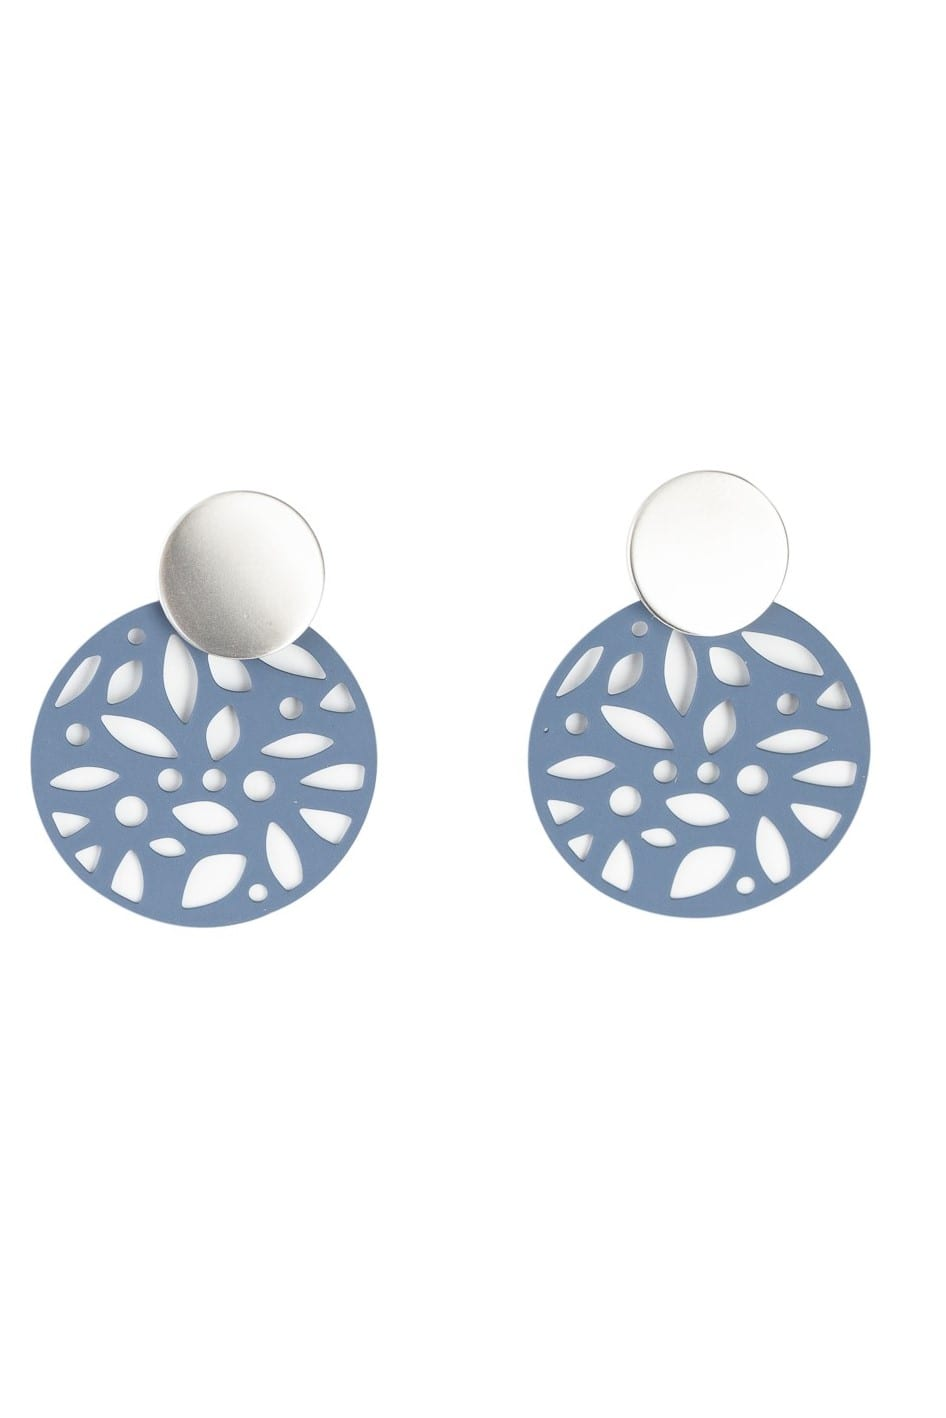 Stilen - Maddi Earrings